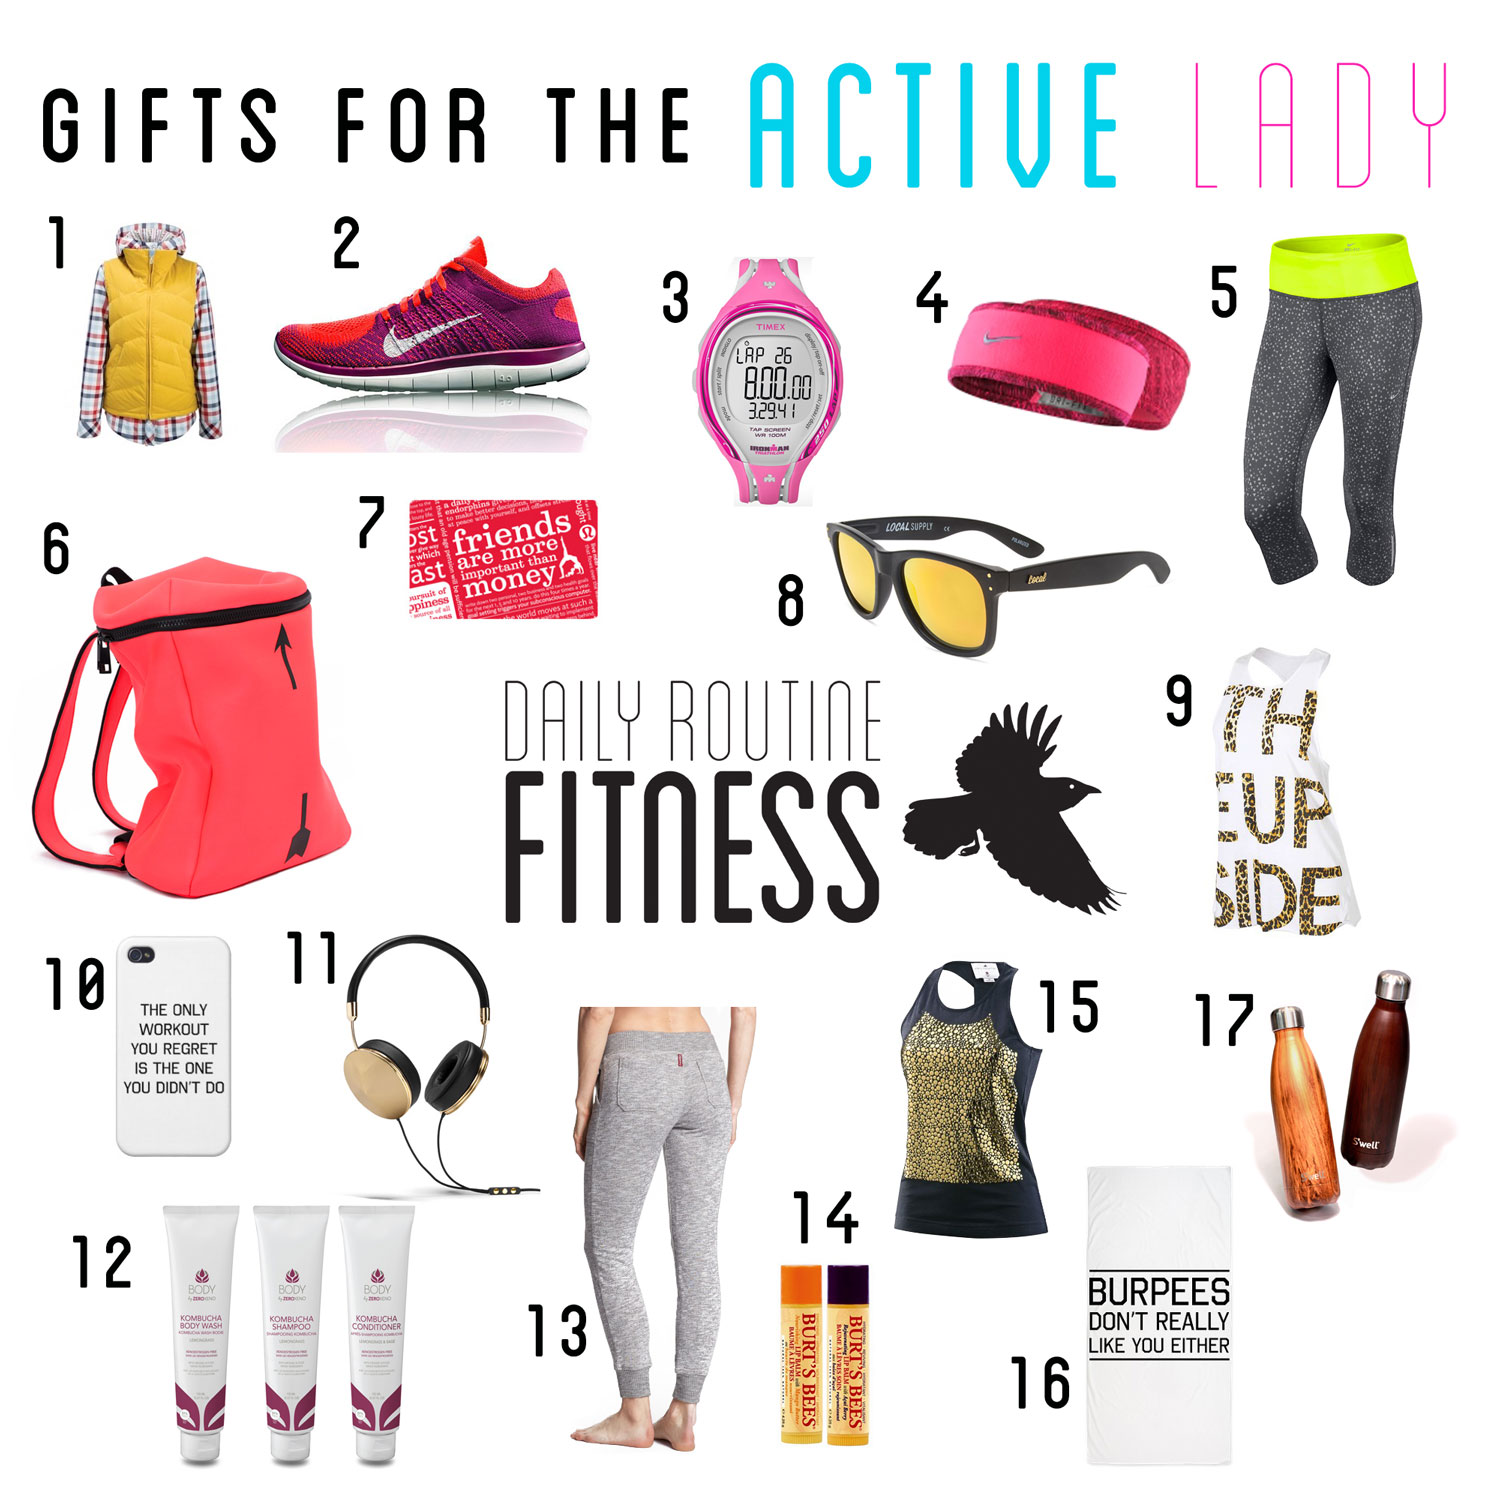 daily routine gift list 2014 christmas - My Christmas List